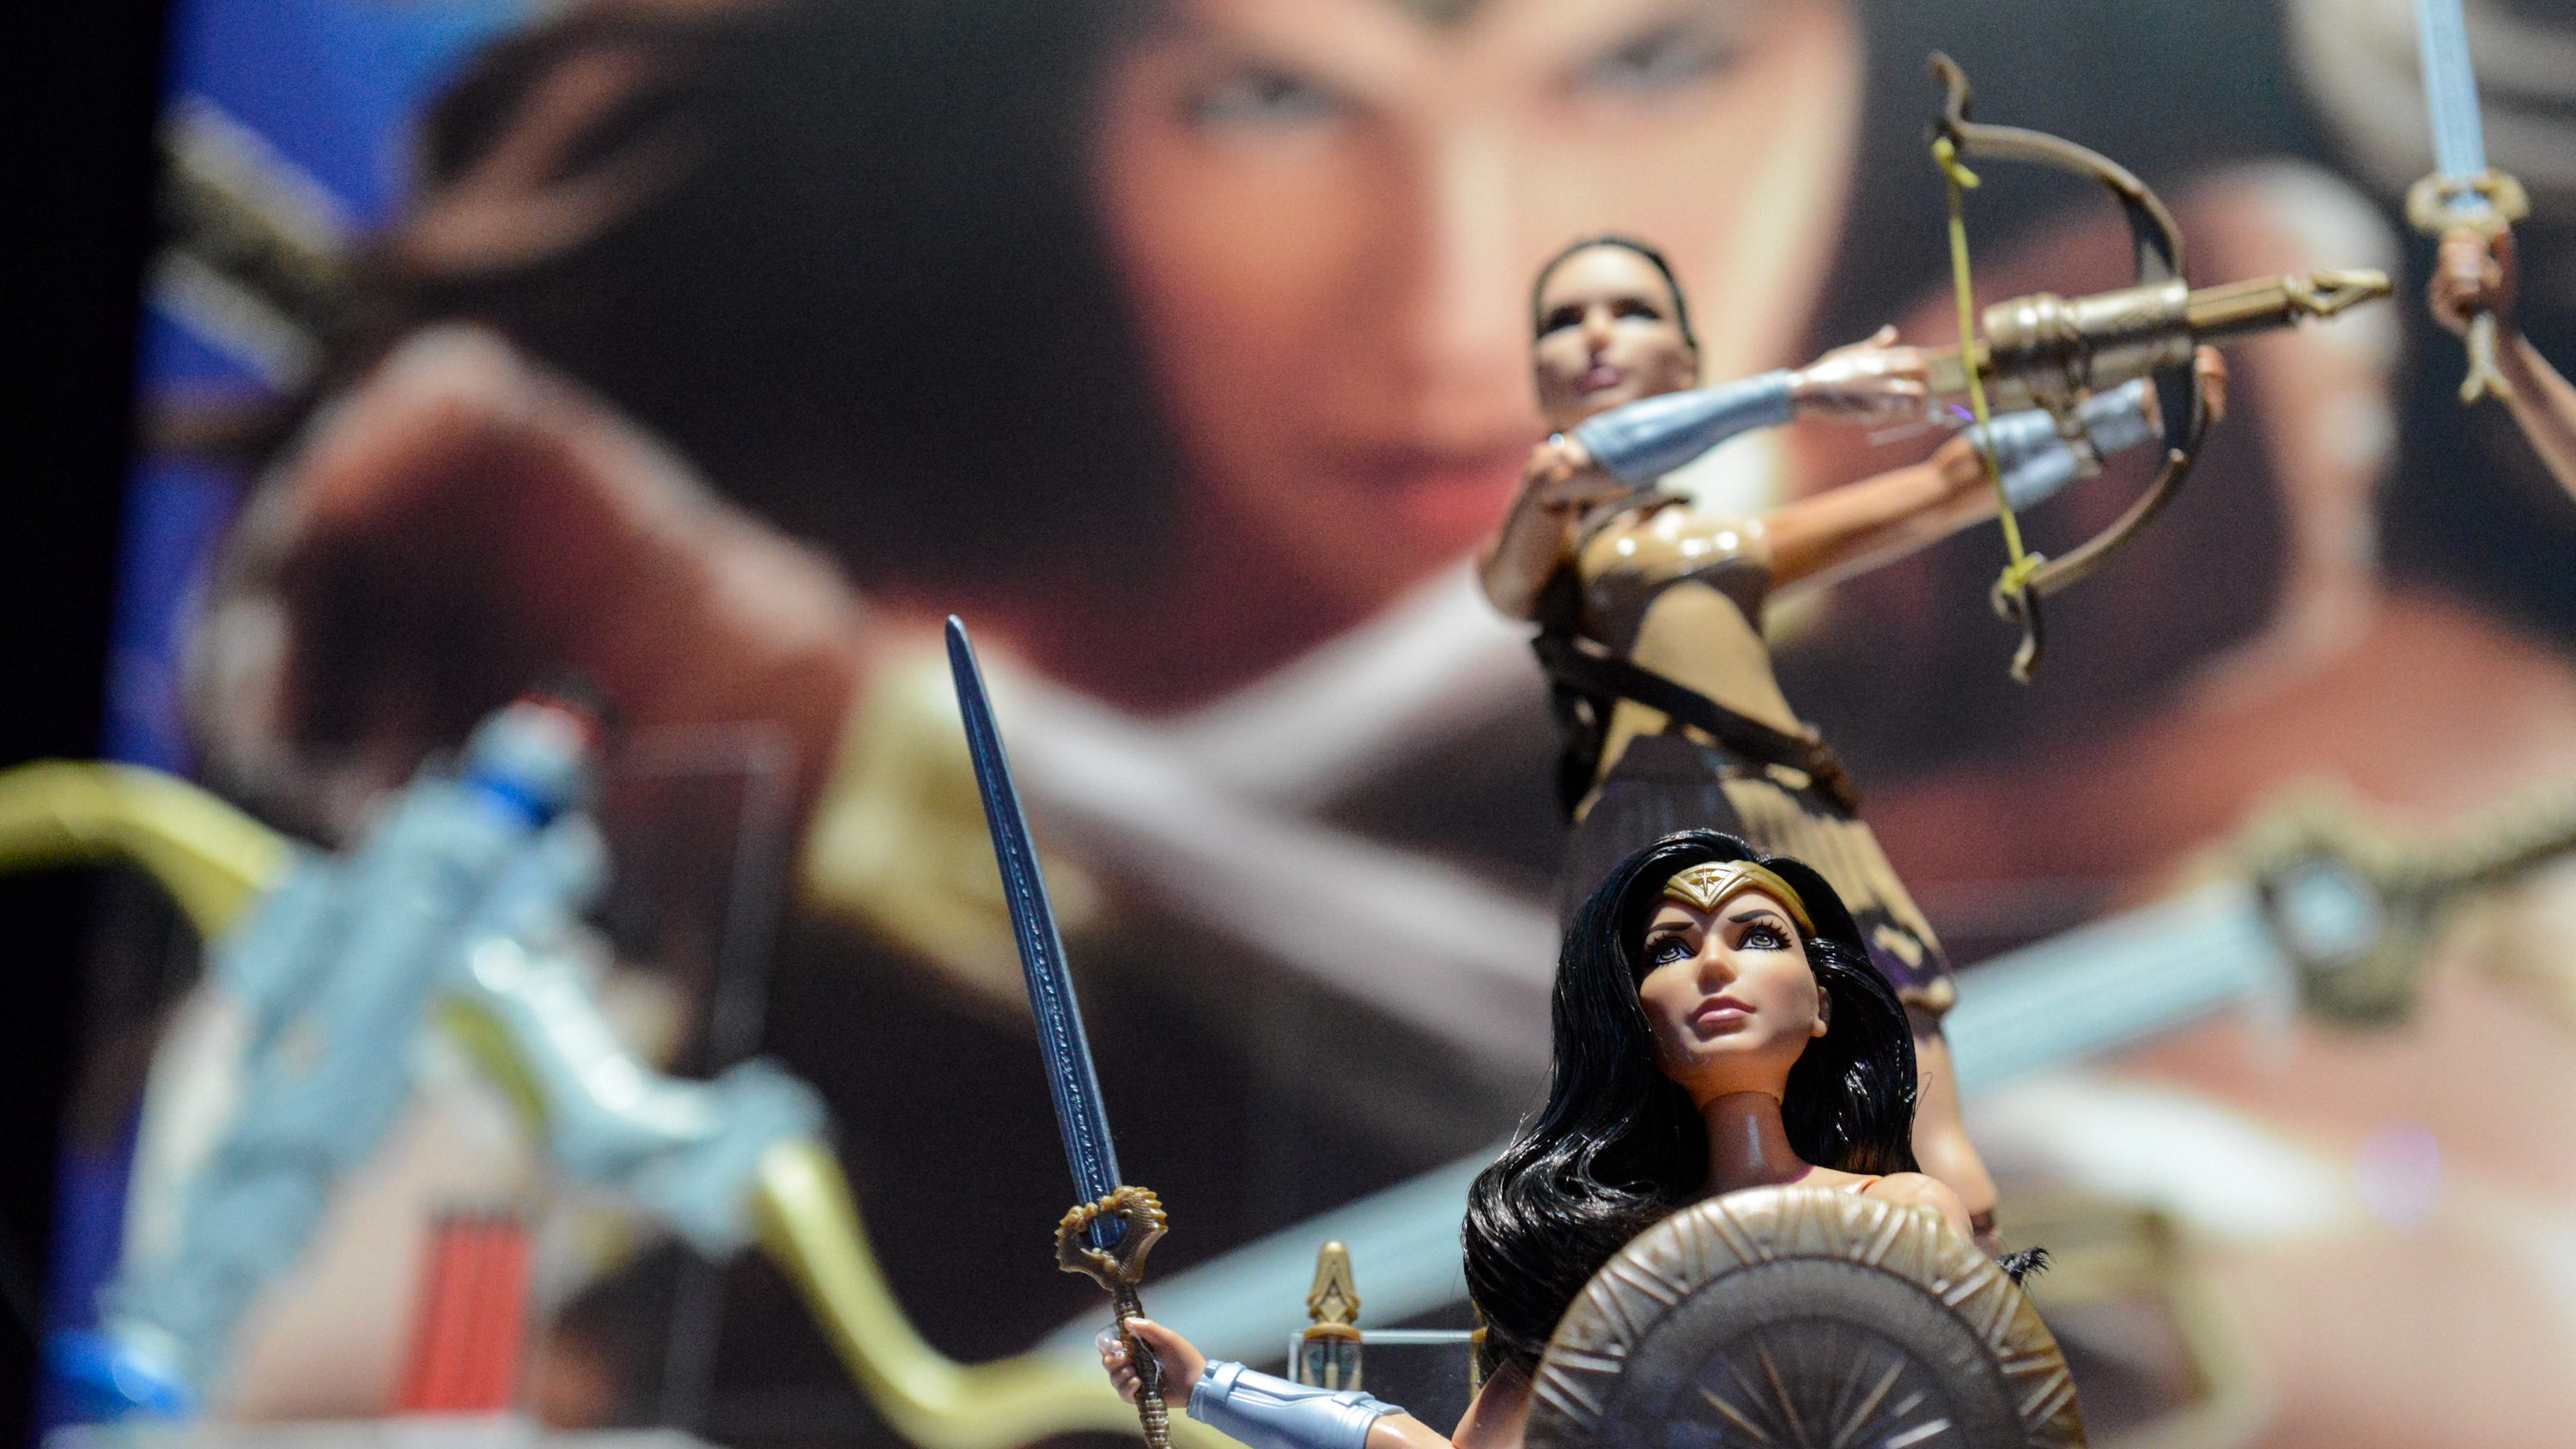 Mattel's Wonder Woman doll is seen at the 114th North American International Toy Fair in New York City, U.S. February 21, 2017.